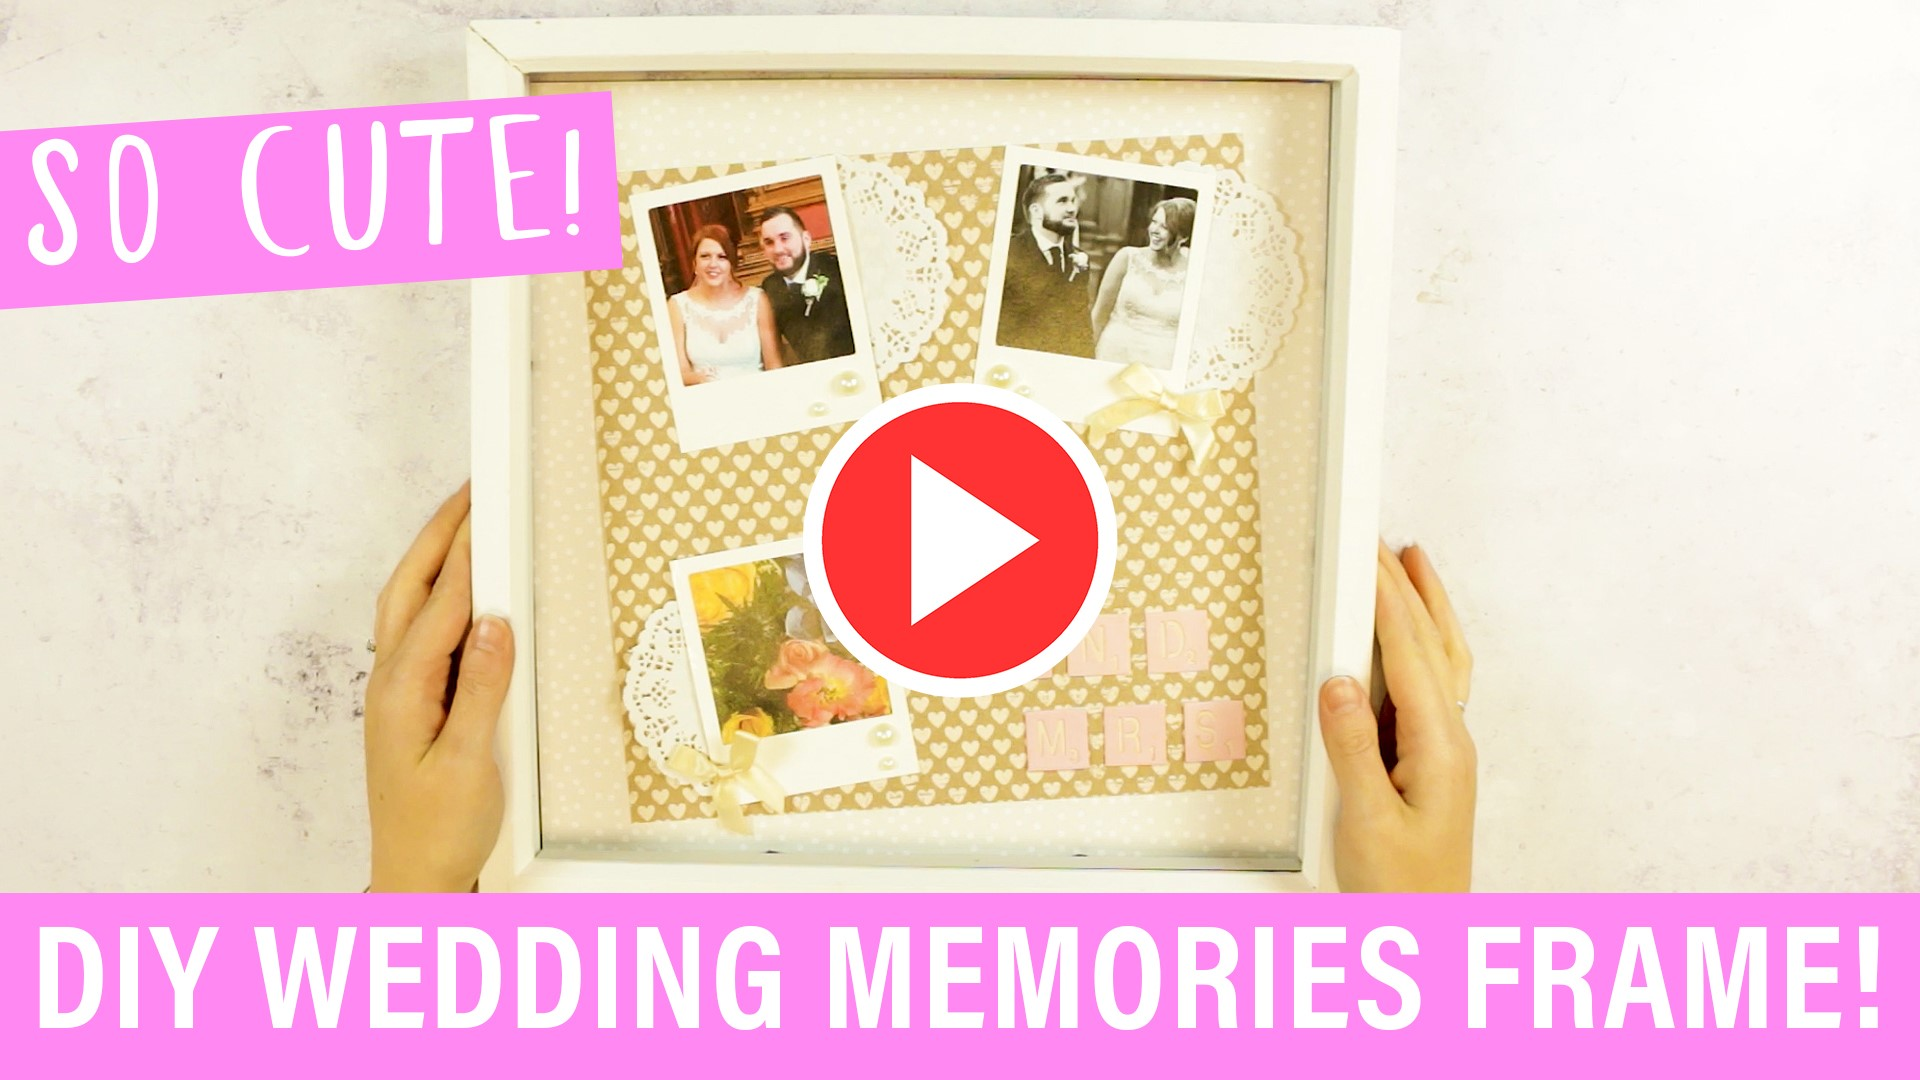 DIY-Wedding-Memories-Frame-August-2018.jpg